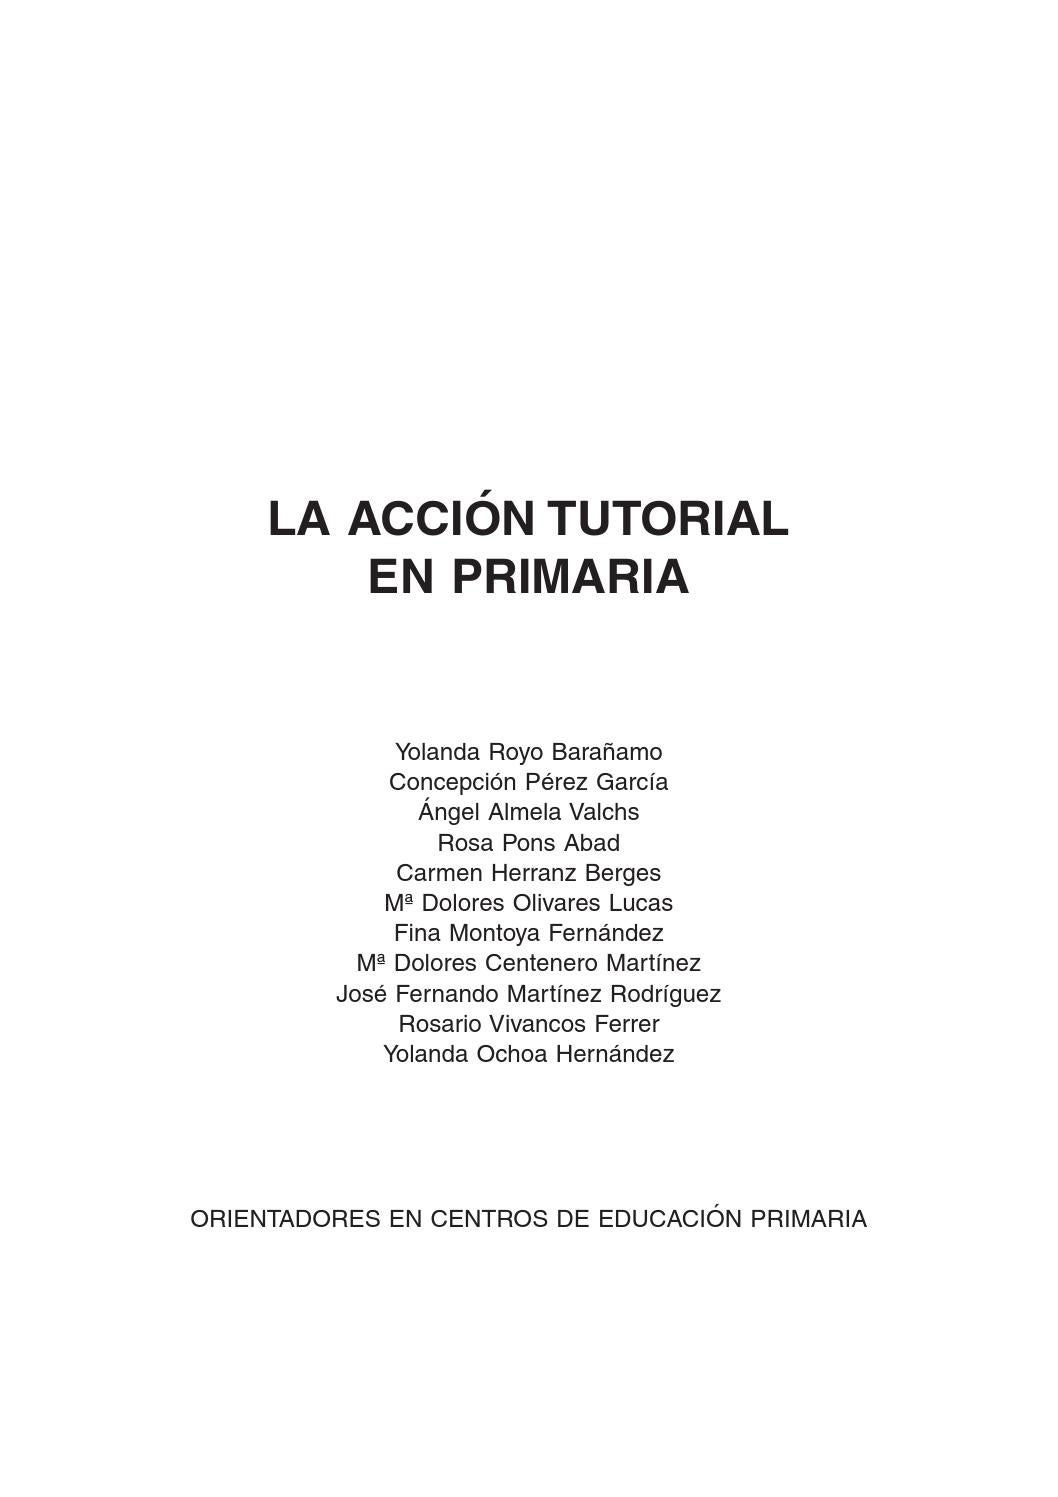 La acción tutorial by Mariano Hurtado Riquelme - issuu